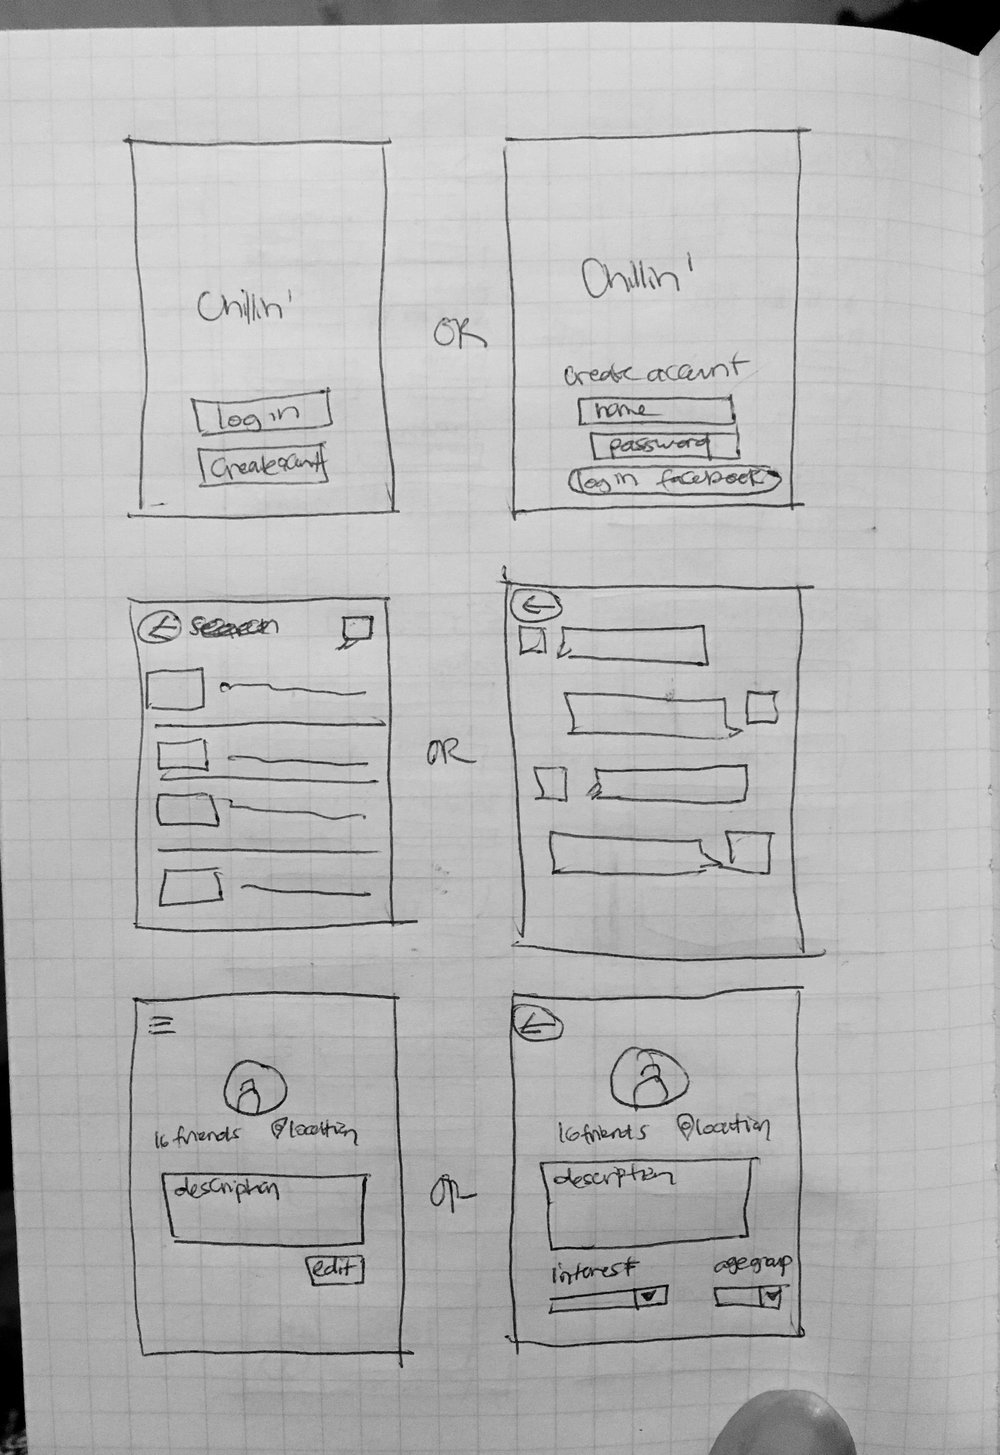 4. Detailing profile and messaging wireframe